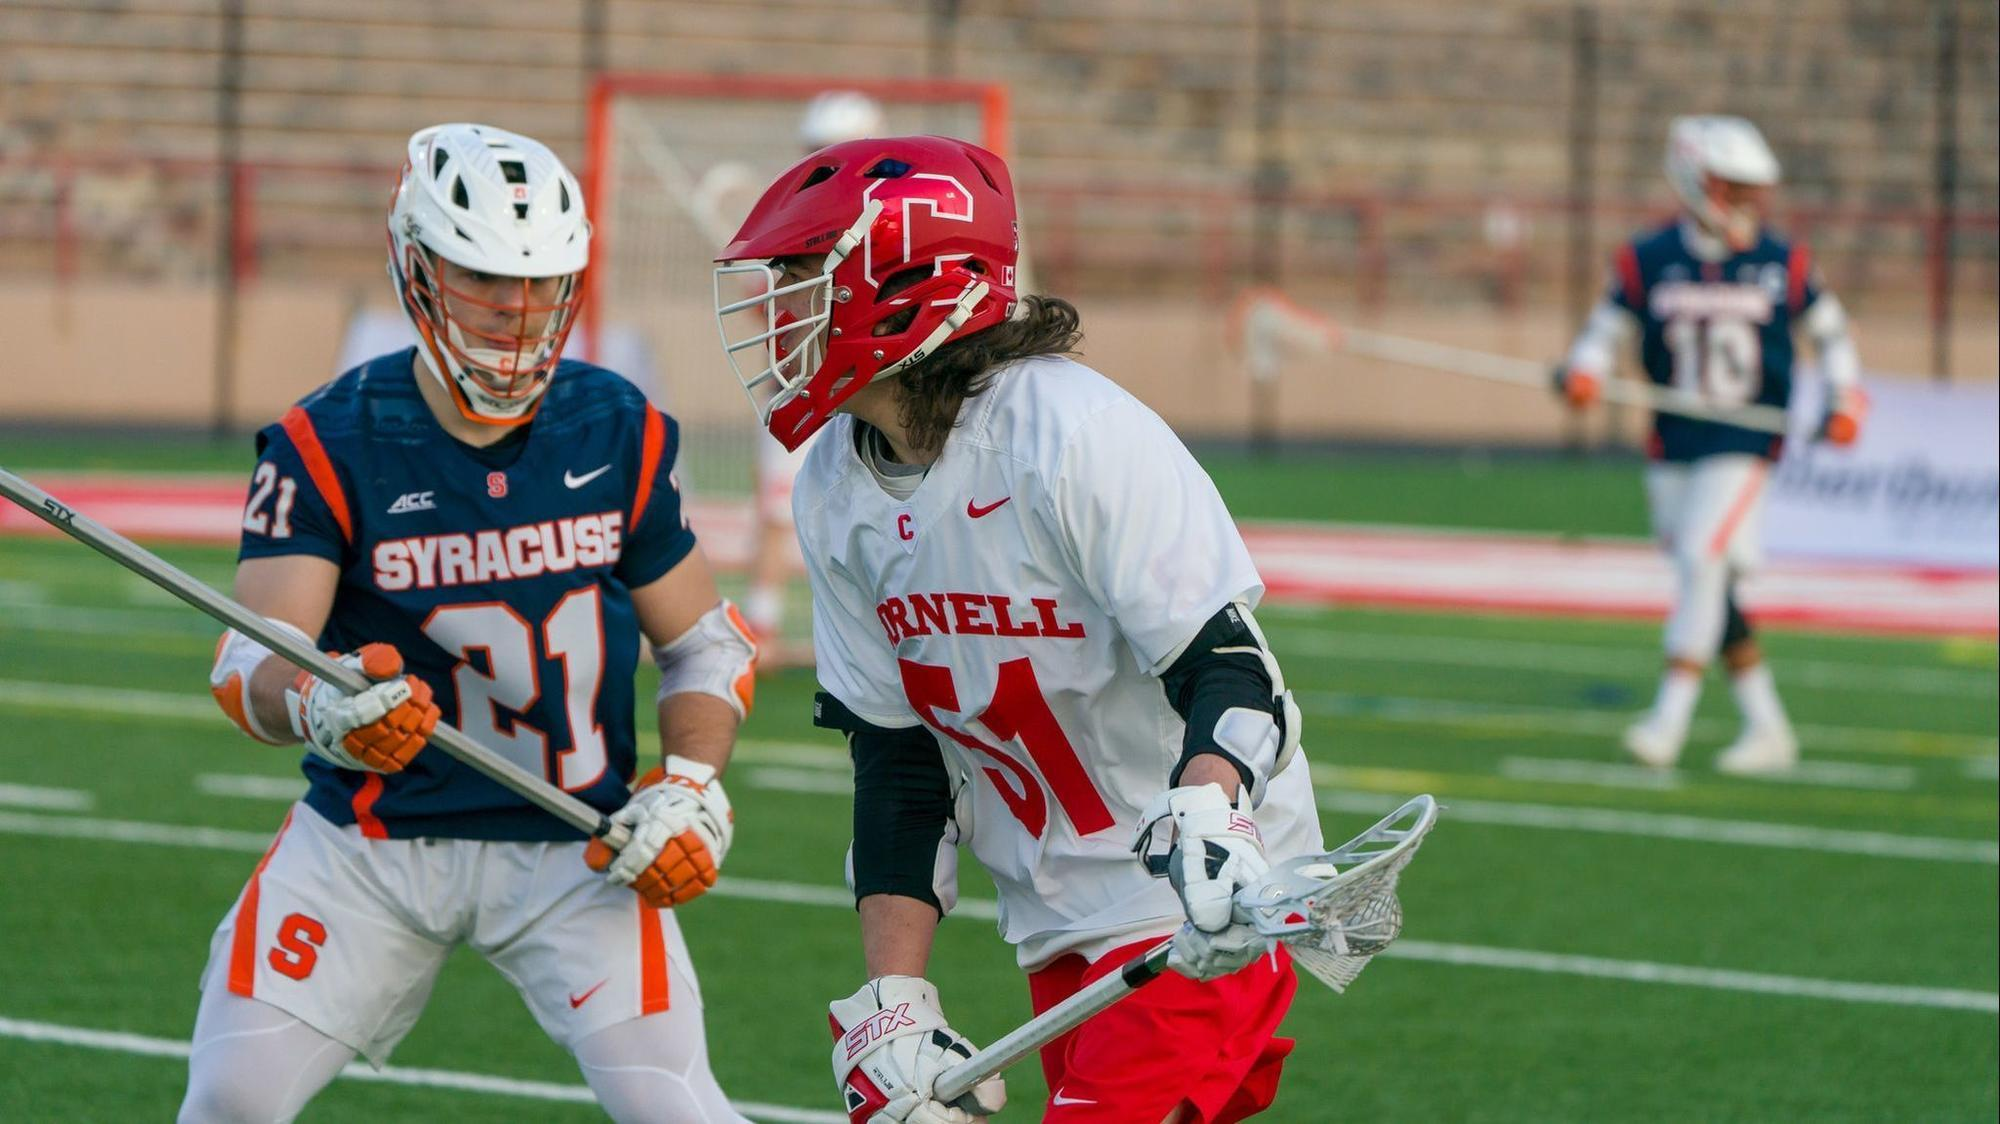 men's lacrosse game of the week: cornell at syracuse - baltimore sun